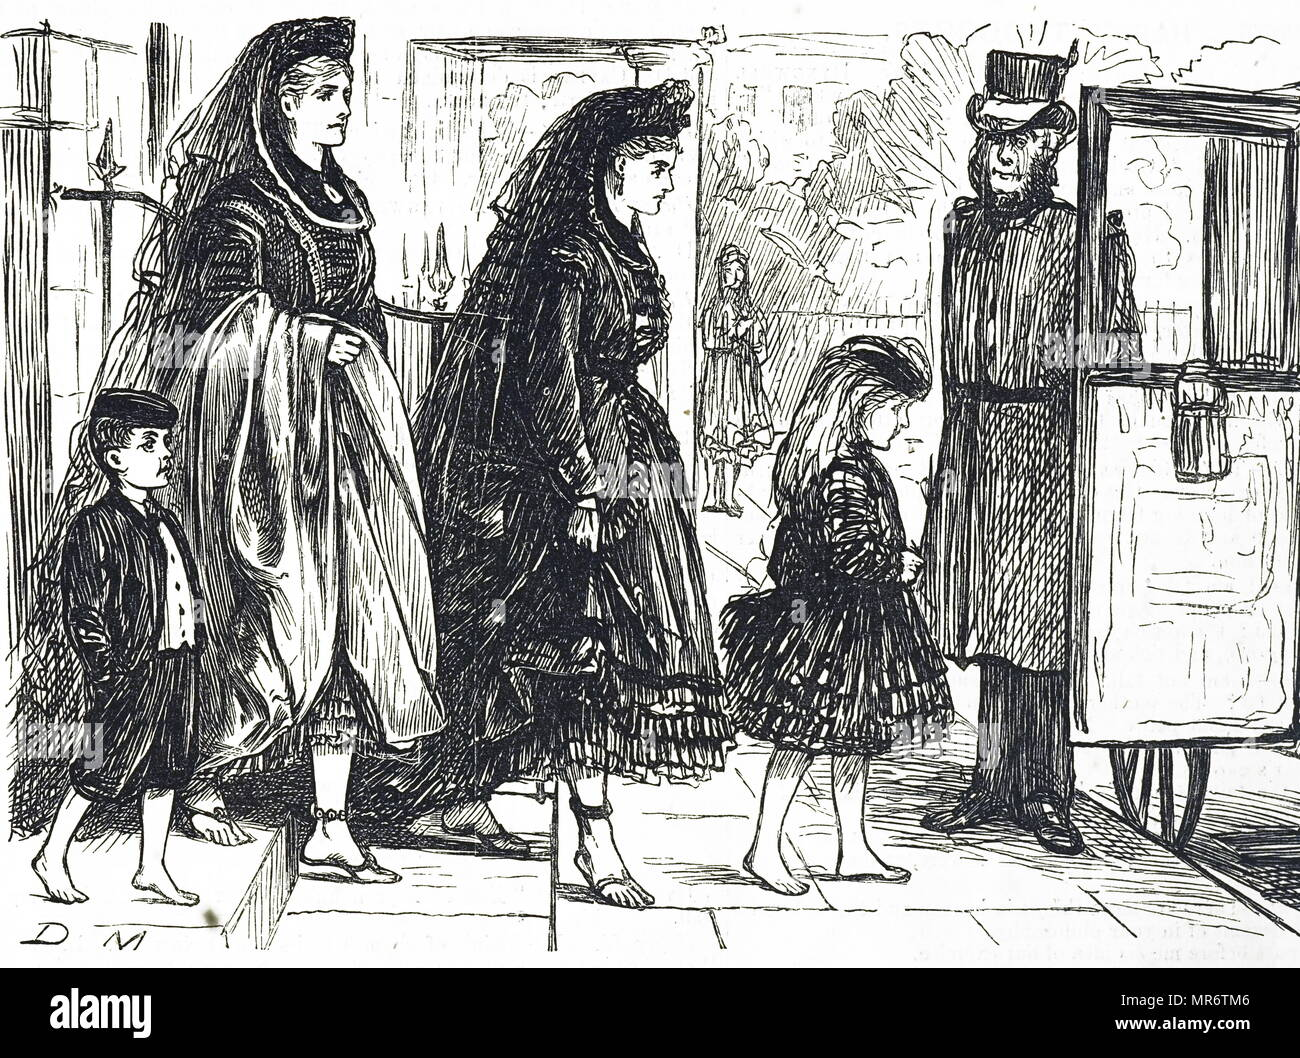 Cartoon depicting people using natural footwear to avoid deformed feet. Illustrated by George du Maurier (1834-1896) a Franco-British cartoonist and author. Dated 19th century - Stock Image